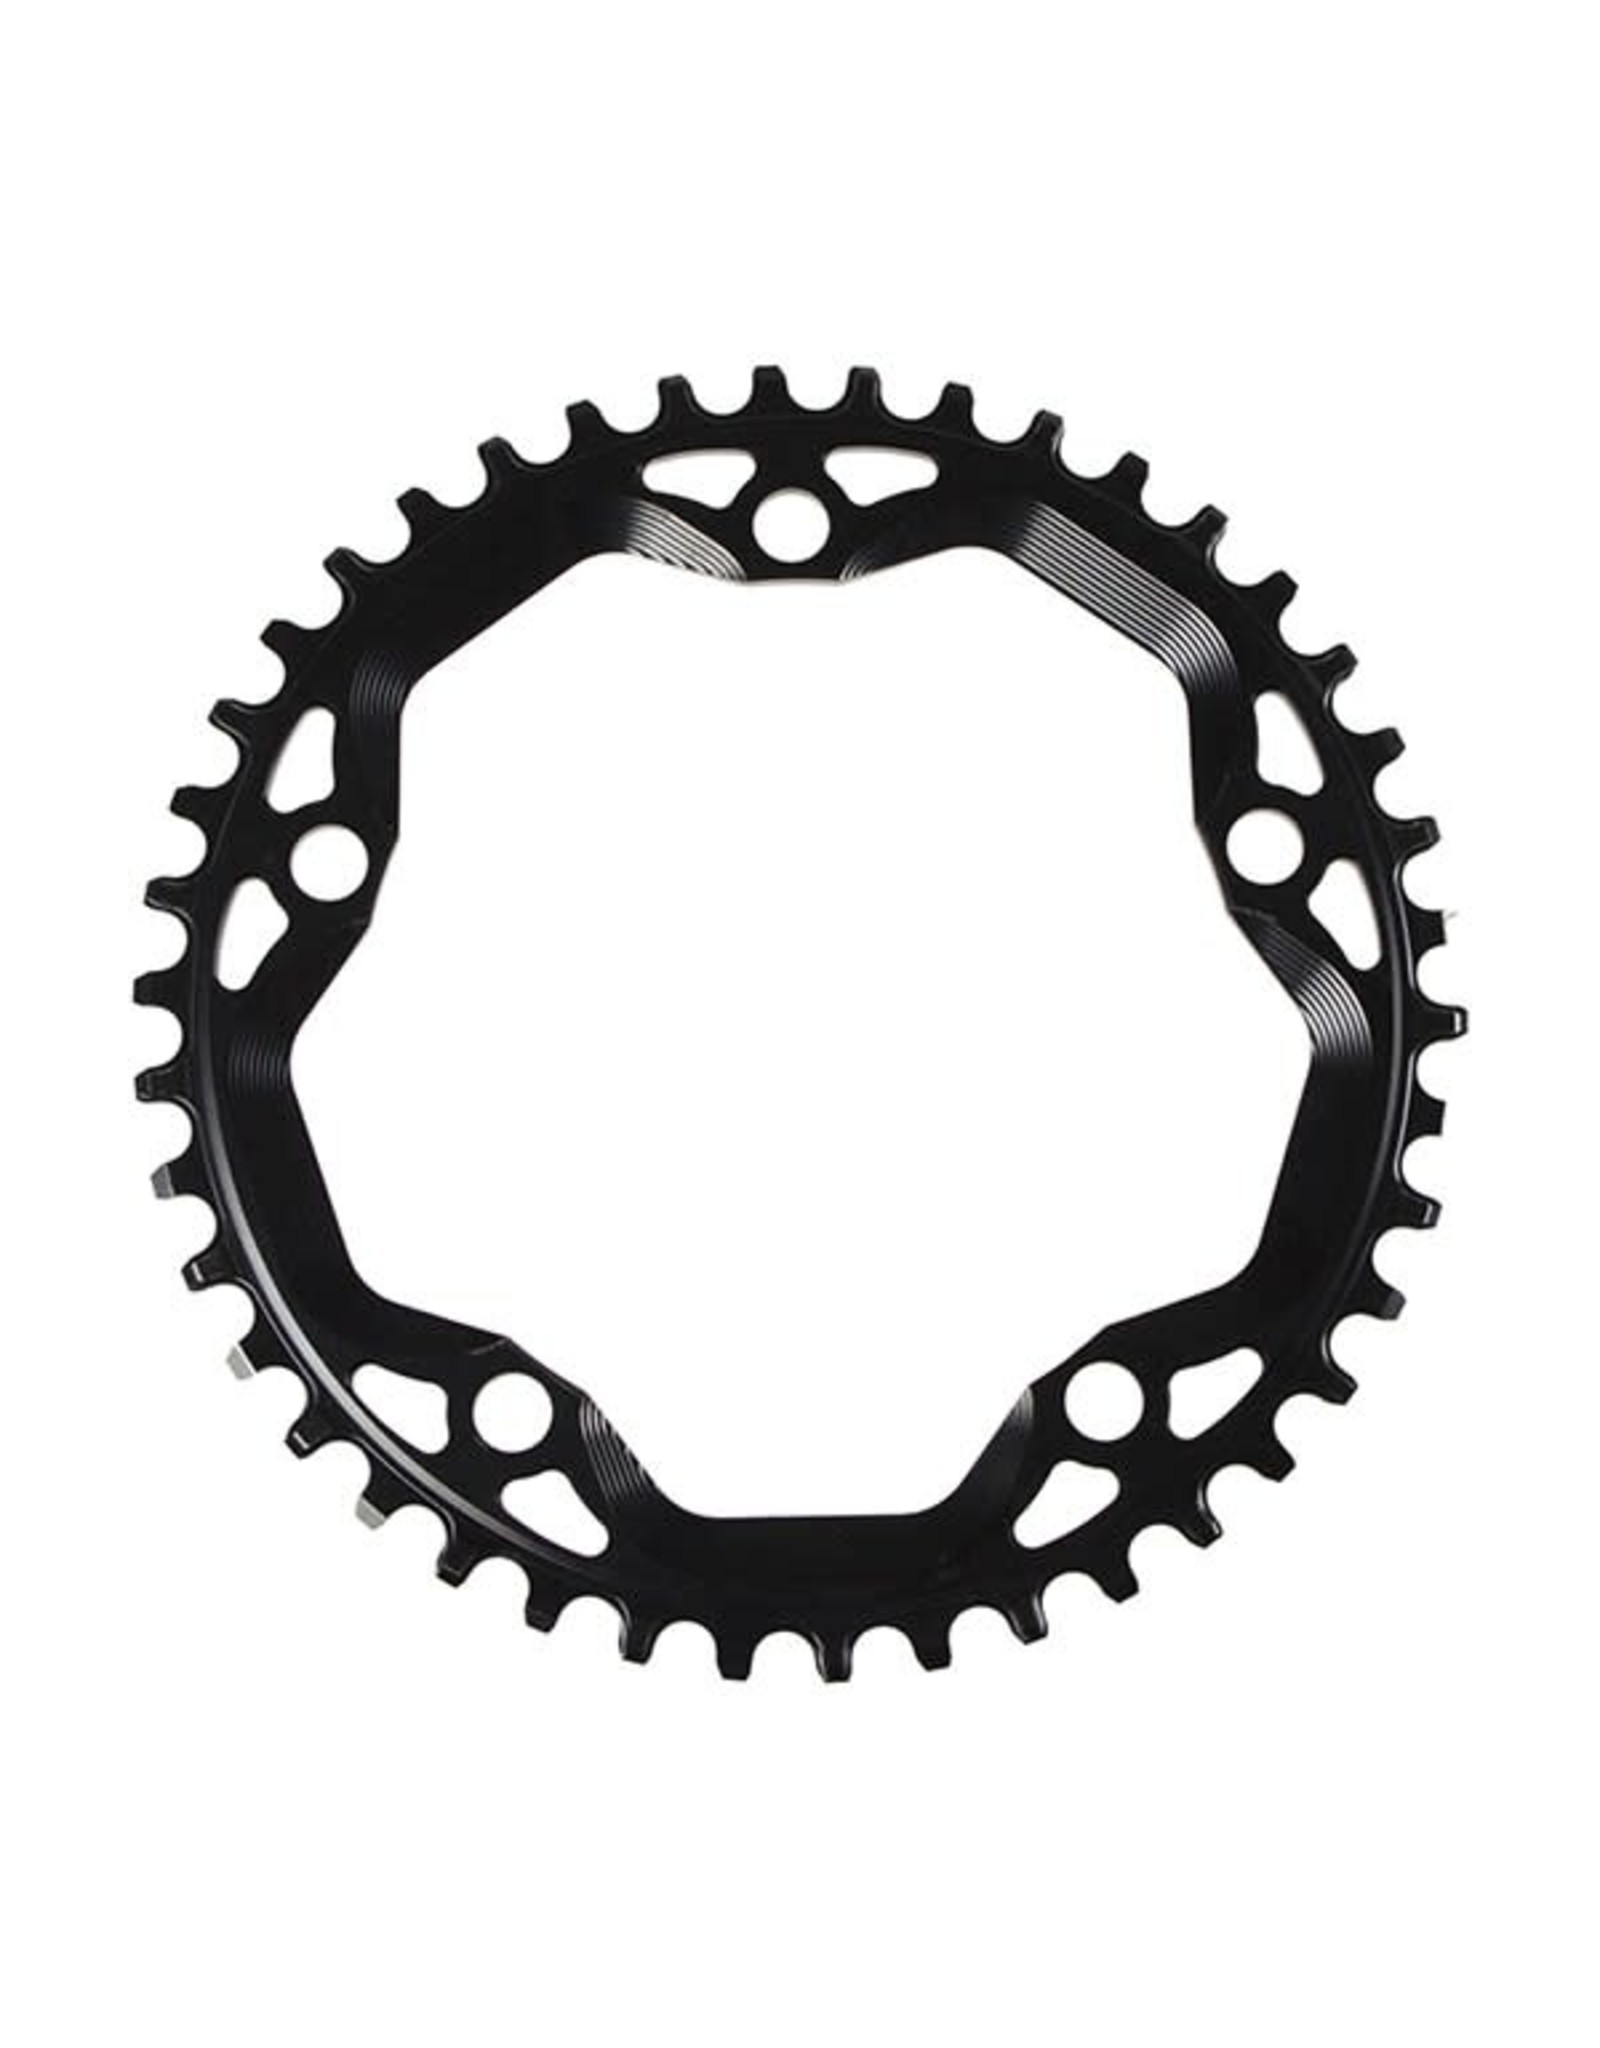 Absolute Black Absolute Black CX1 Narrow-Wide Chainring